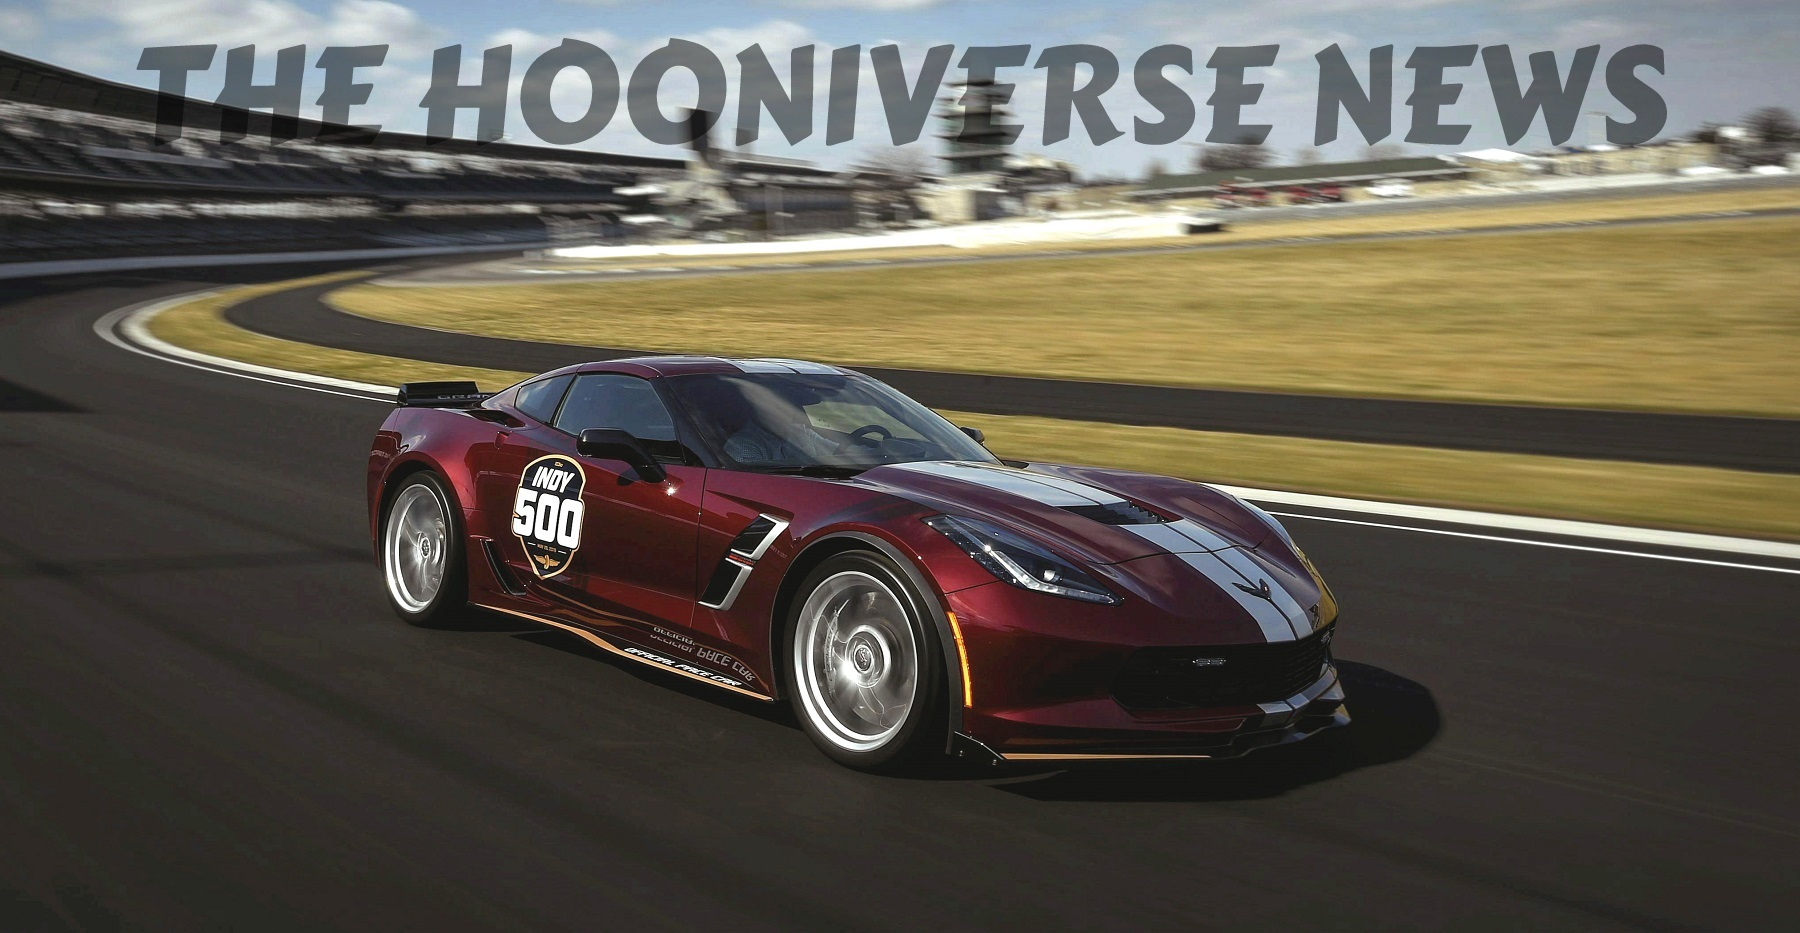 The 2019 Corvette Grand Sport will serve as the Official Pace Ca